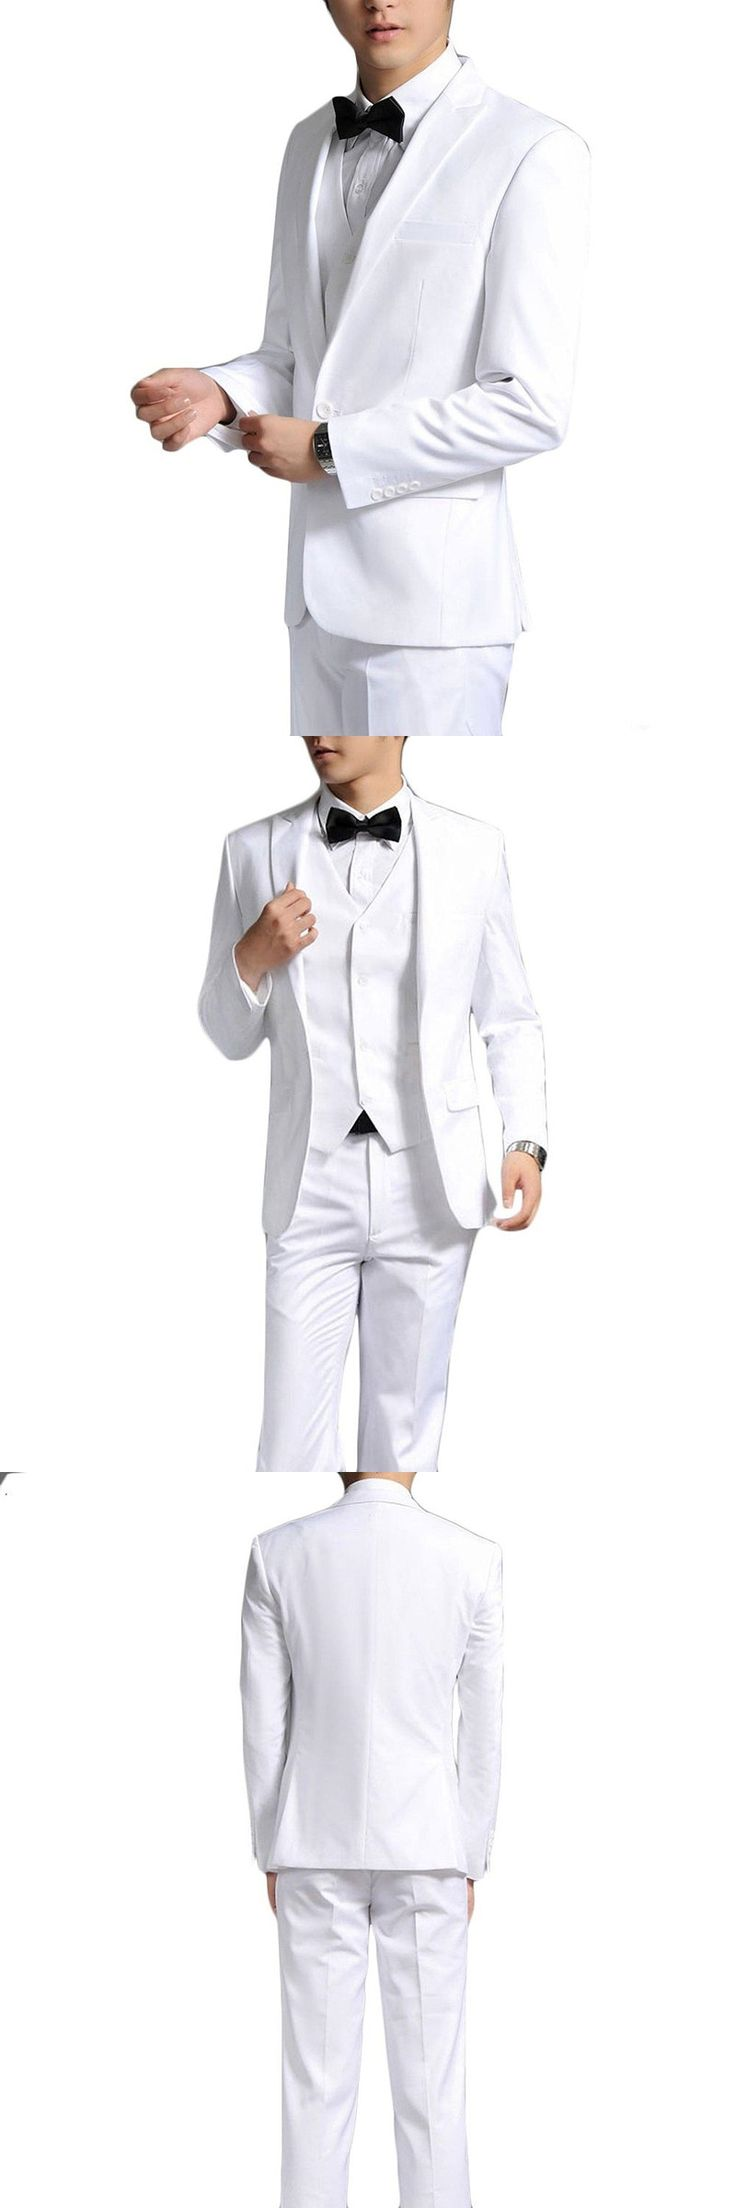 Three Buttons Black Formal Fashion Terno Masculino Notch Lapel High Quality Costume Made 3Pieces(Jacket+Pant+Vest+Tie) Men Suits